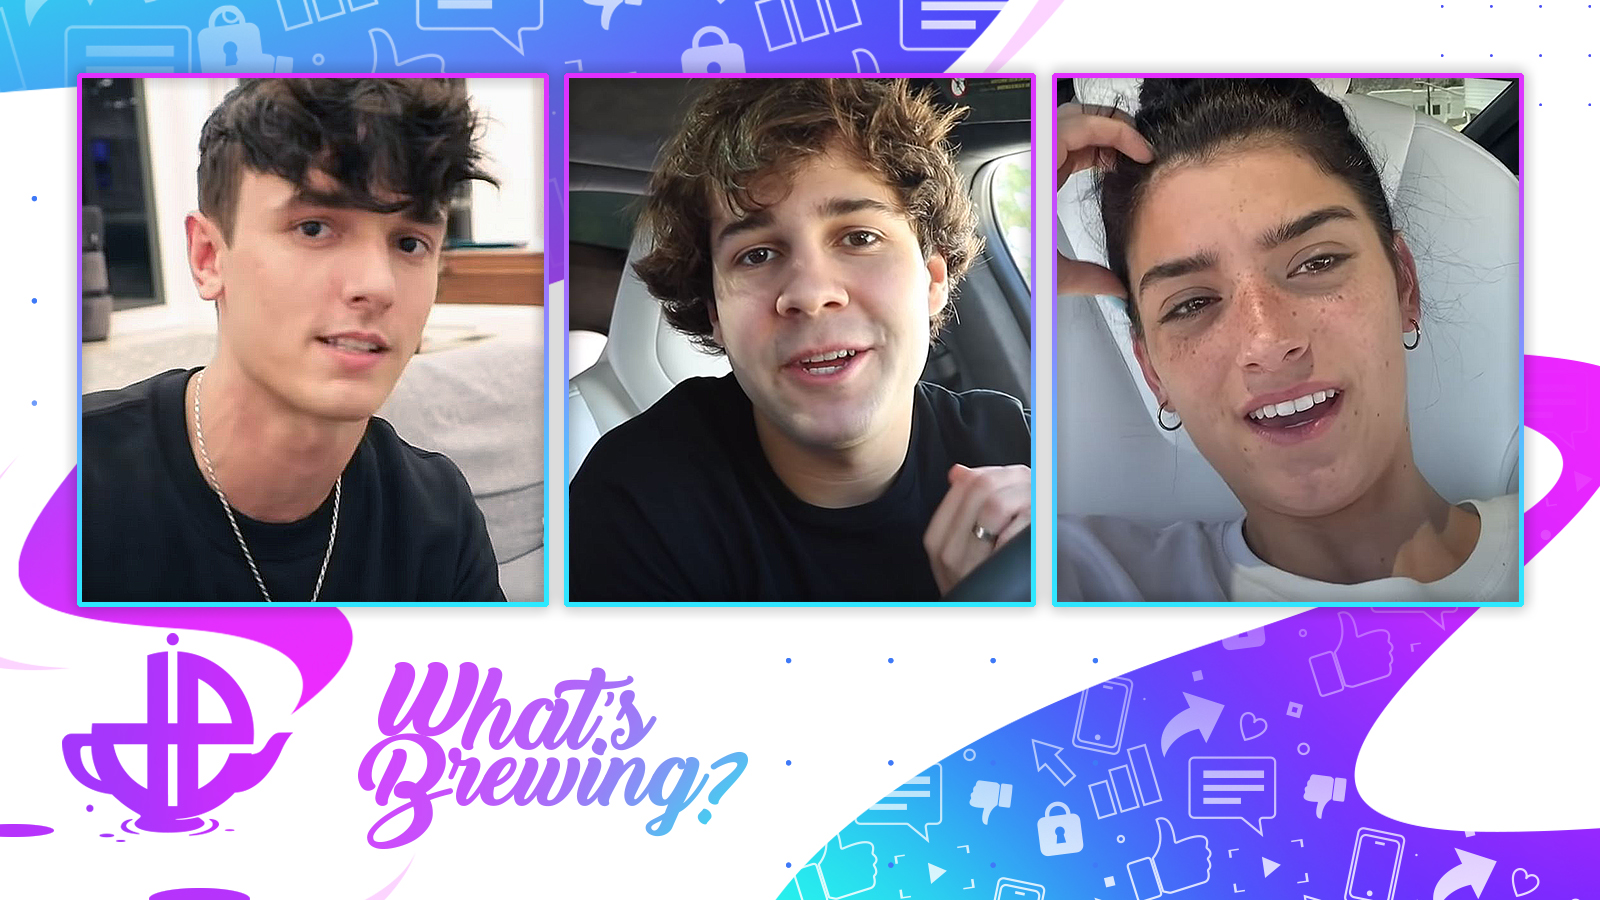 Bryce Hall, David Dobrik and Dixie D'Amelio are pictured on the What's Brewing logo.